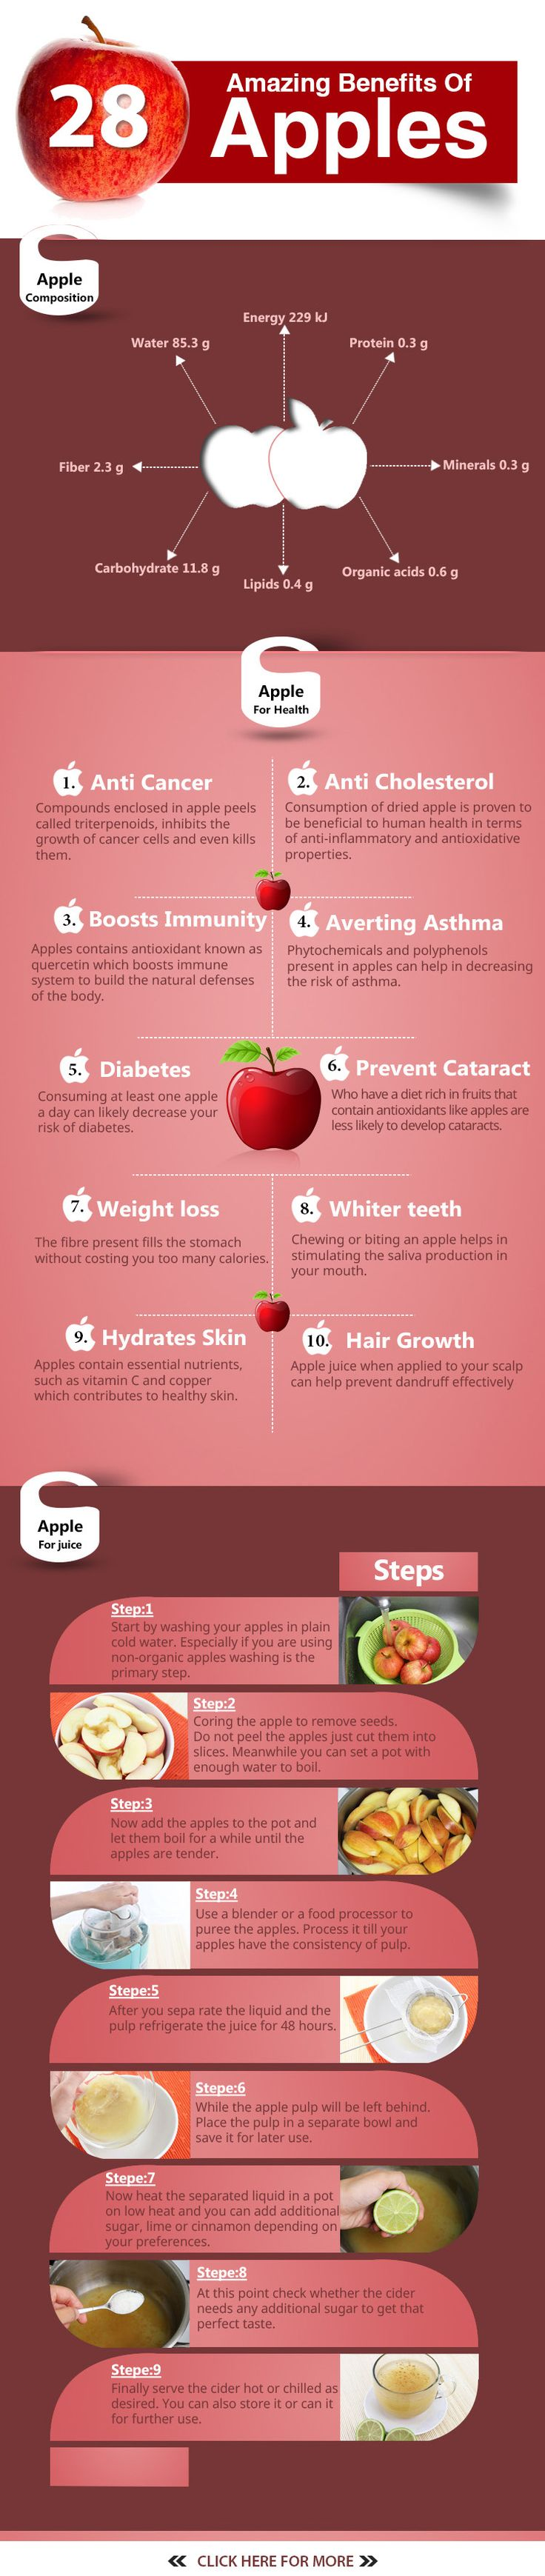 Benefits Of Apples For Skin